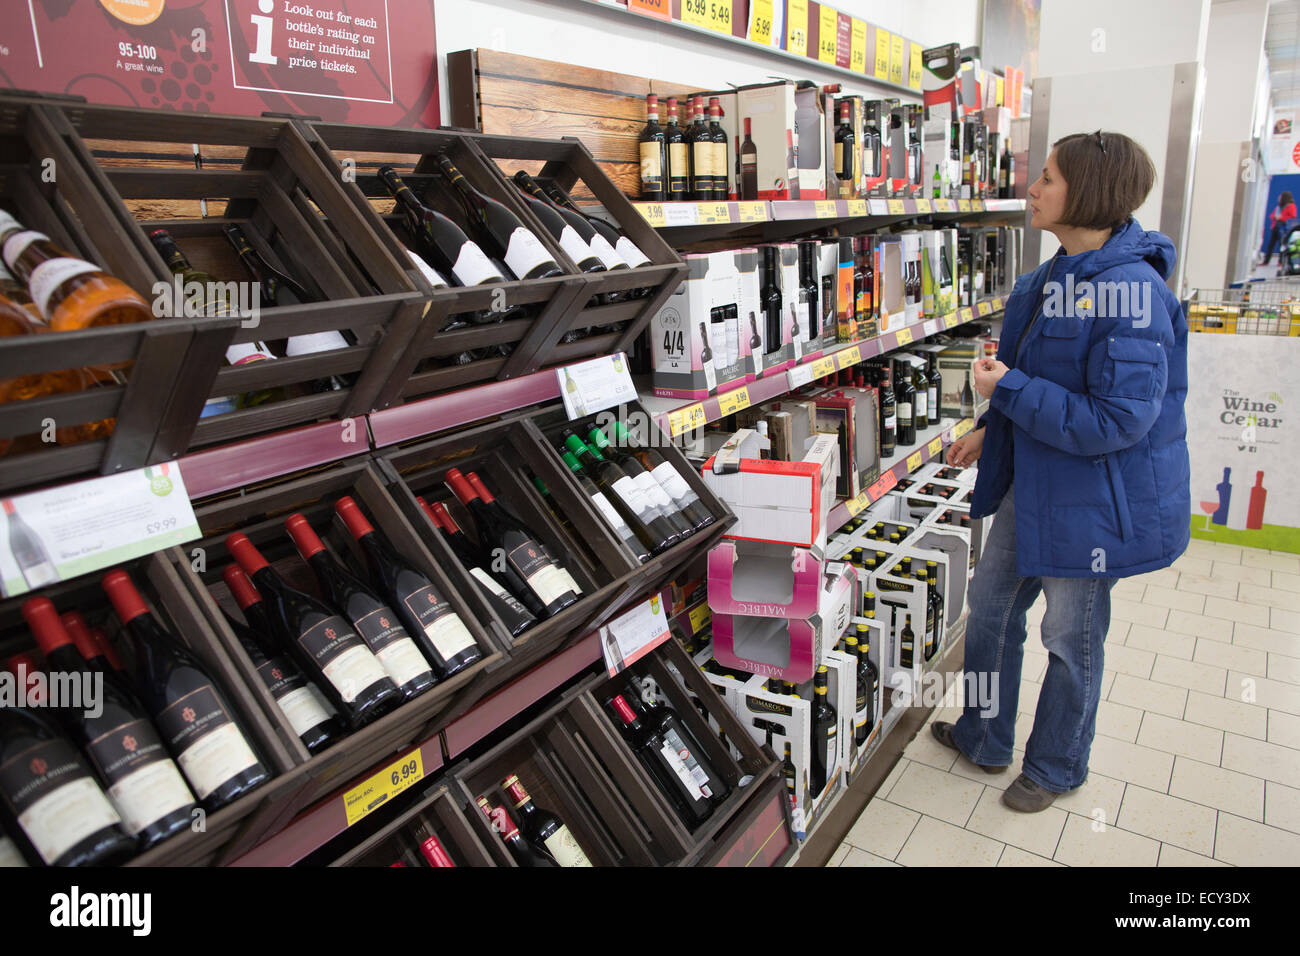 Shopper buying wine in Lidl supermarket, Mitcham, South London, UK - Stock Image